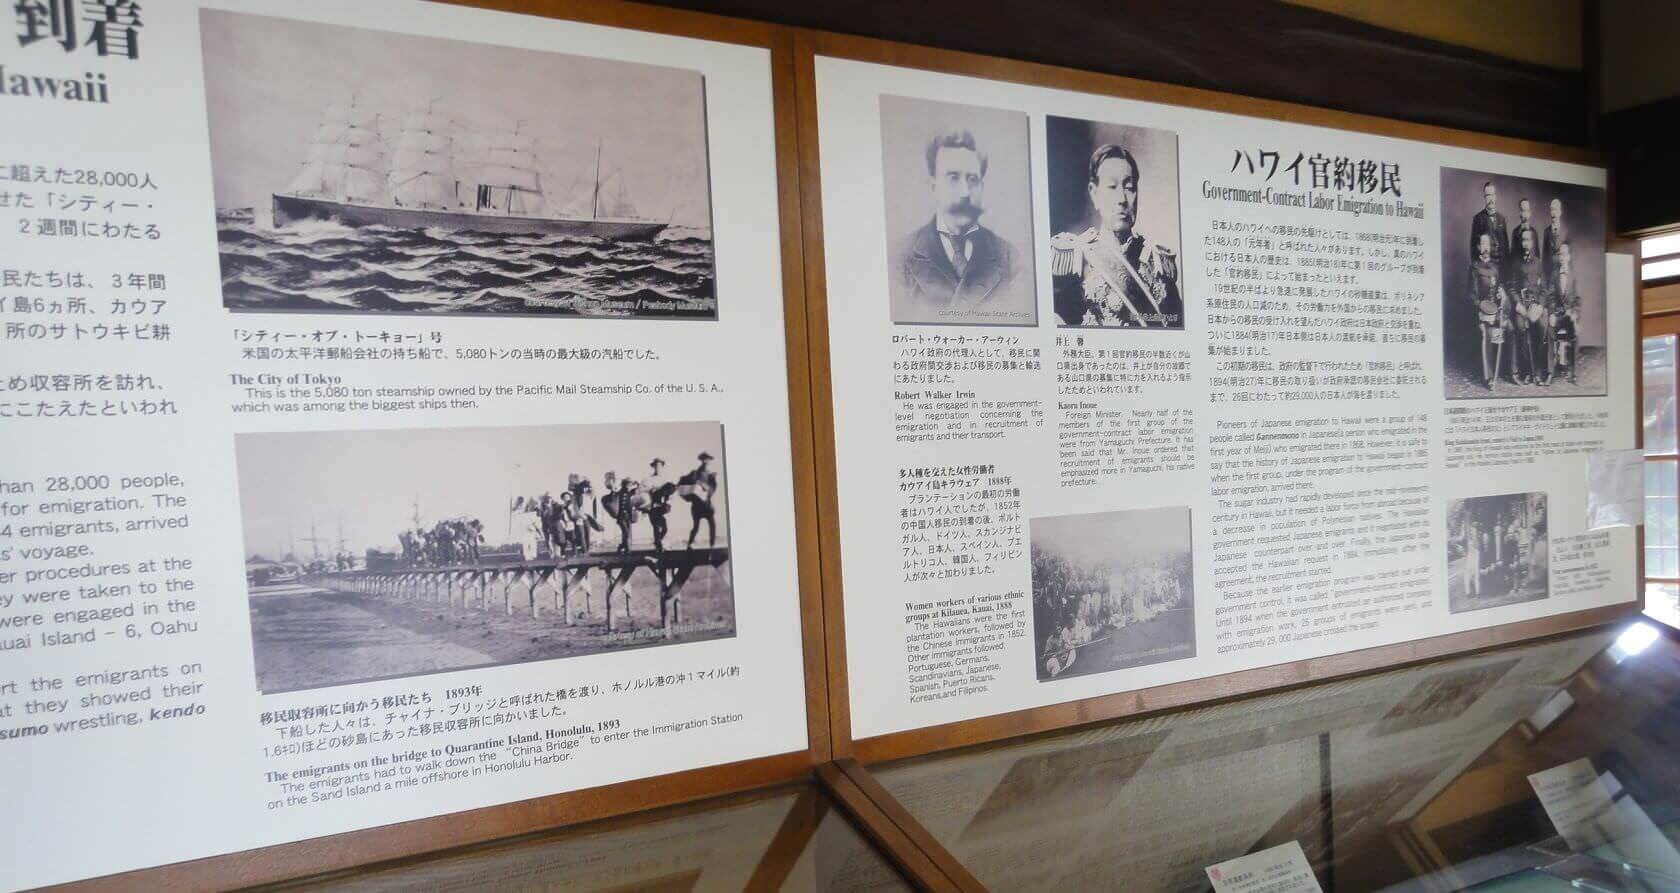 Museum of Japanese Emigration to Hawaii